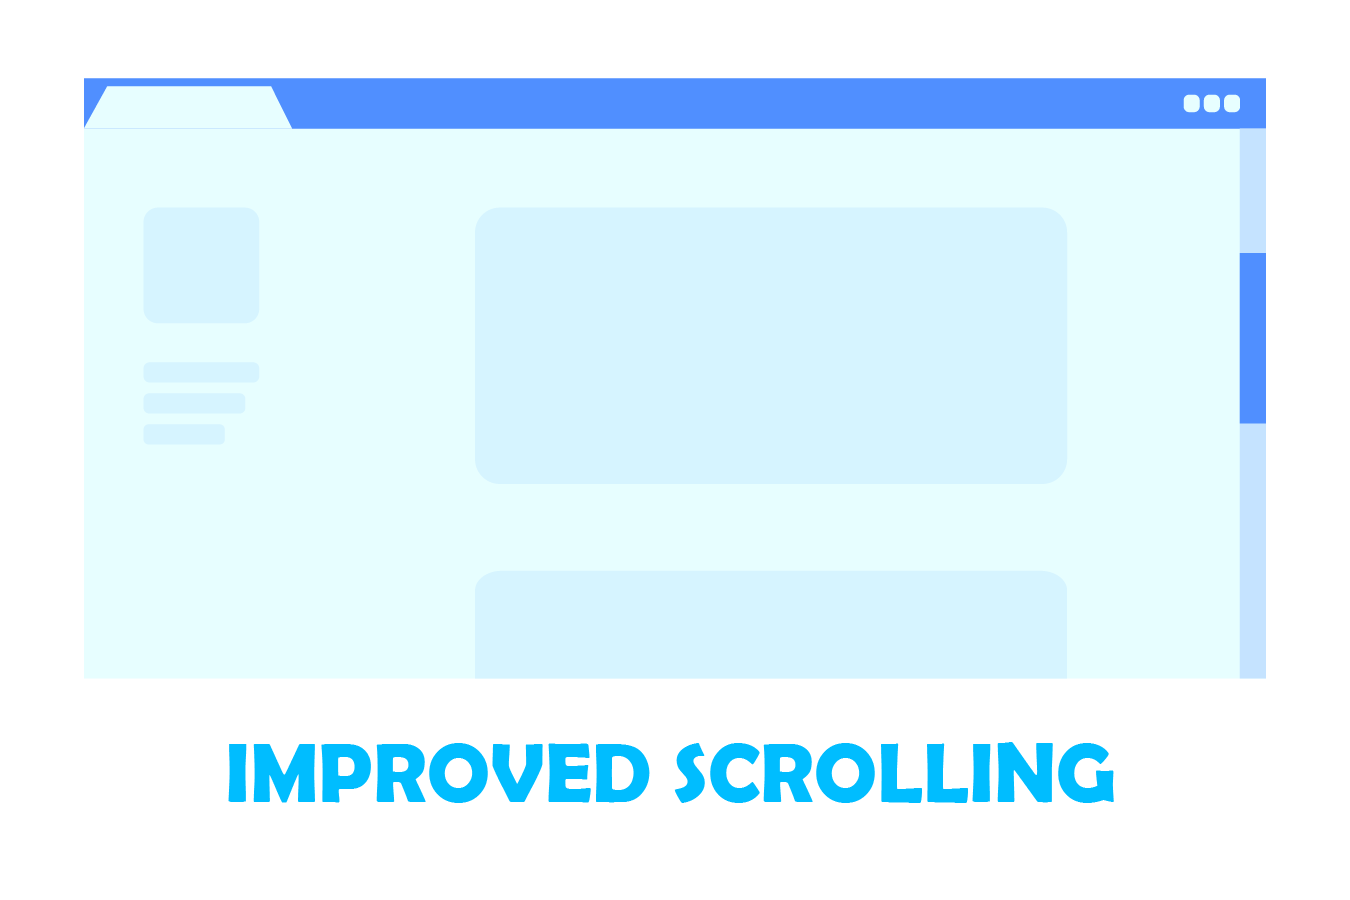 improved_scrolling